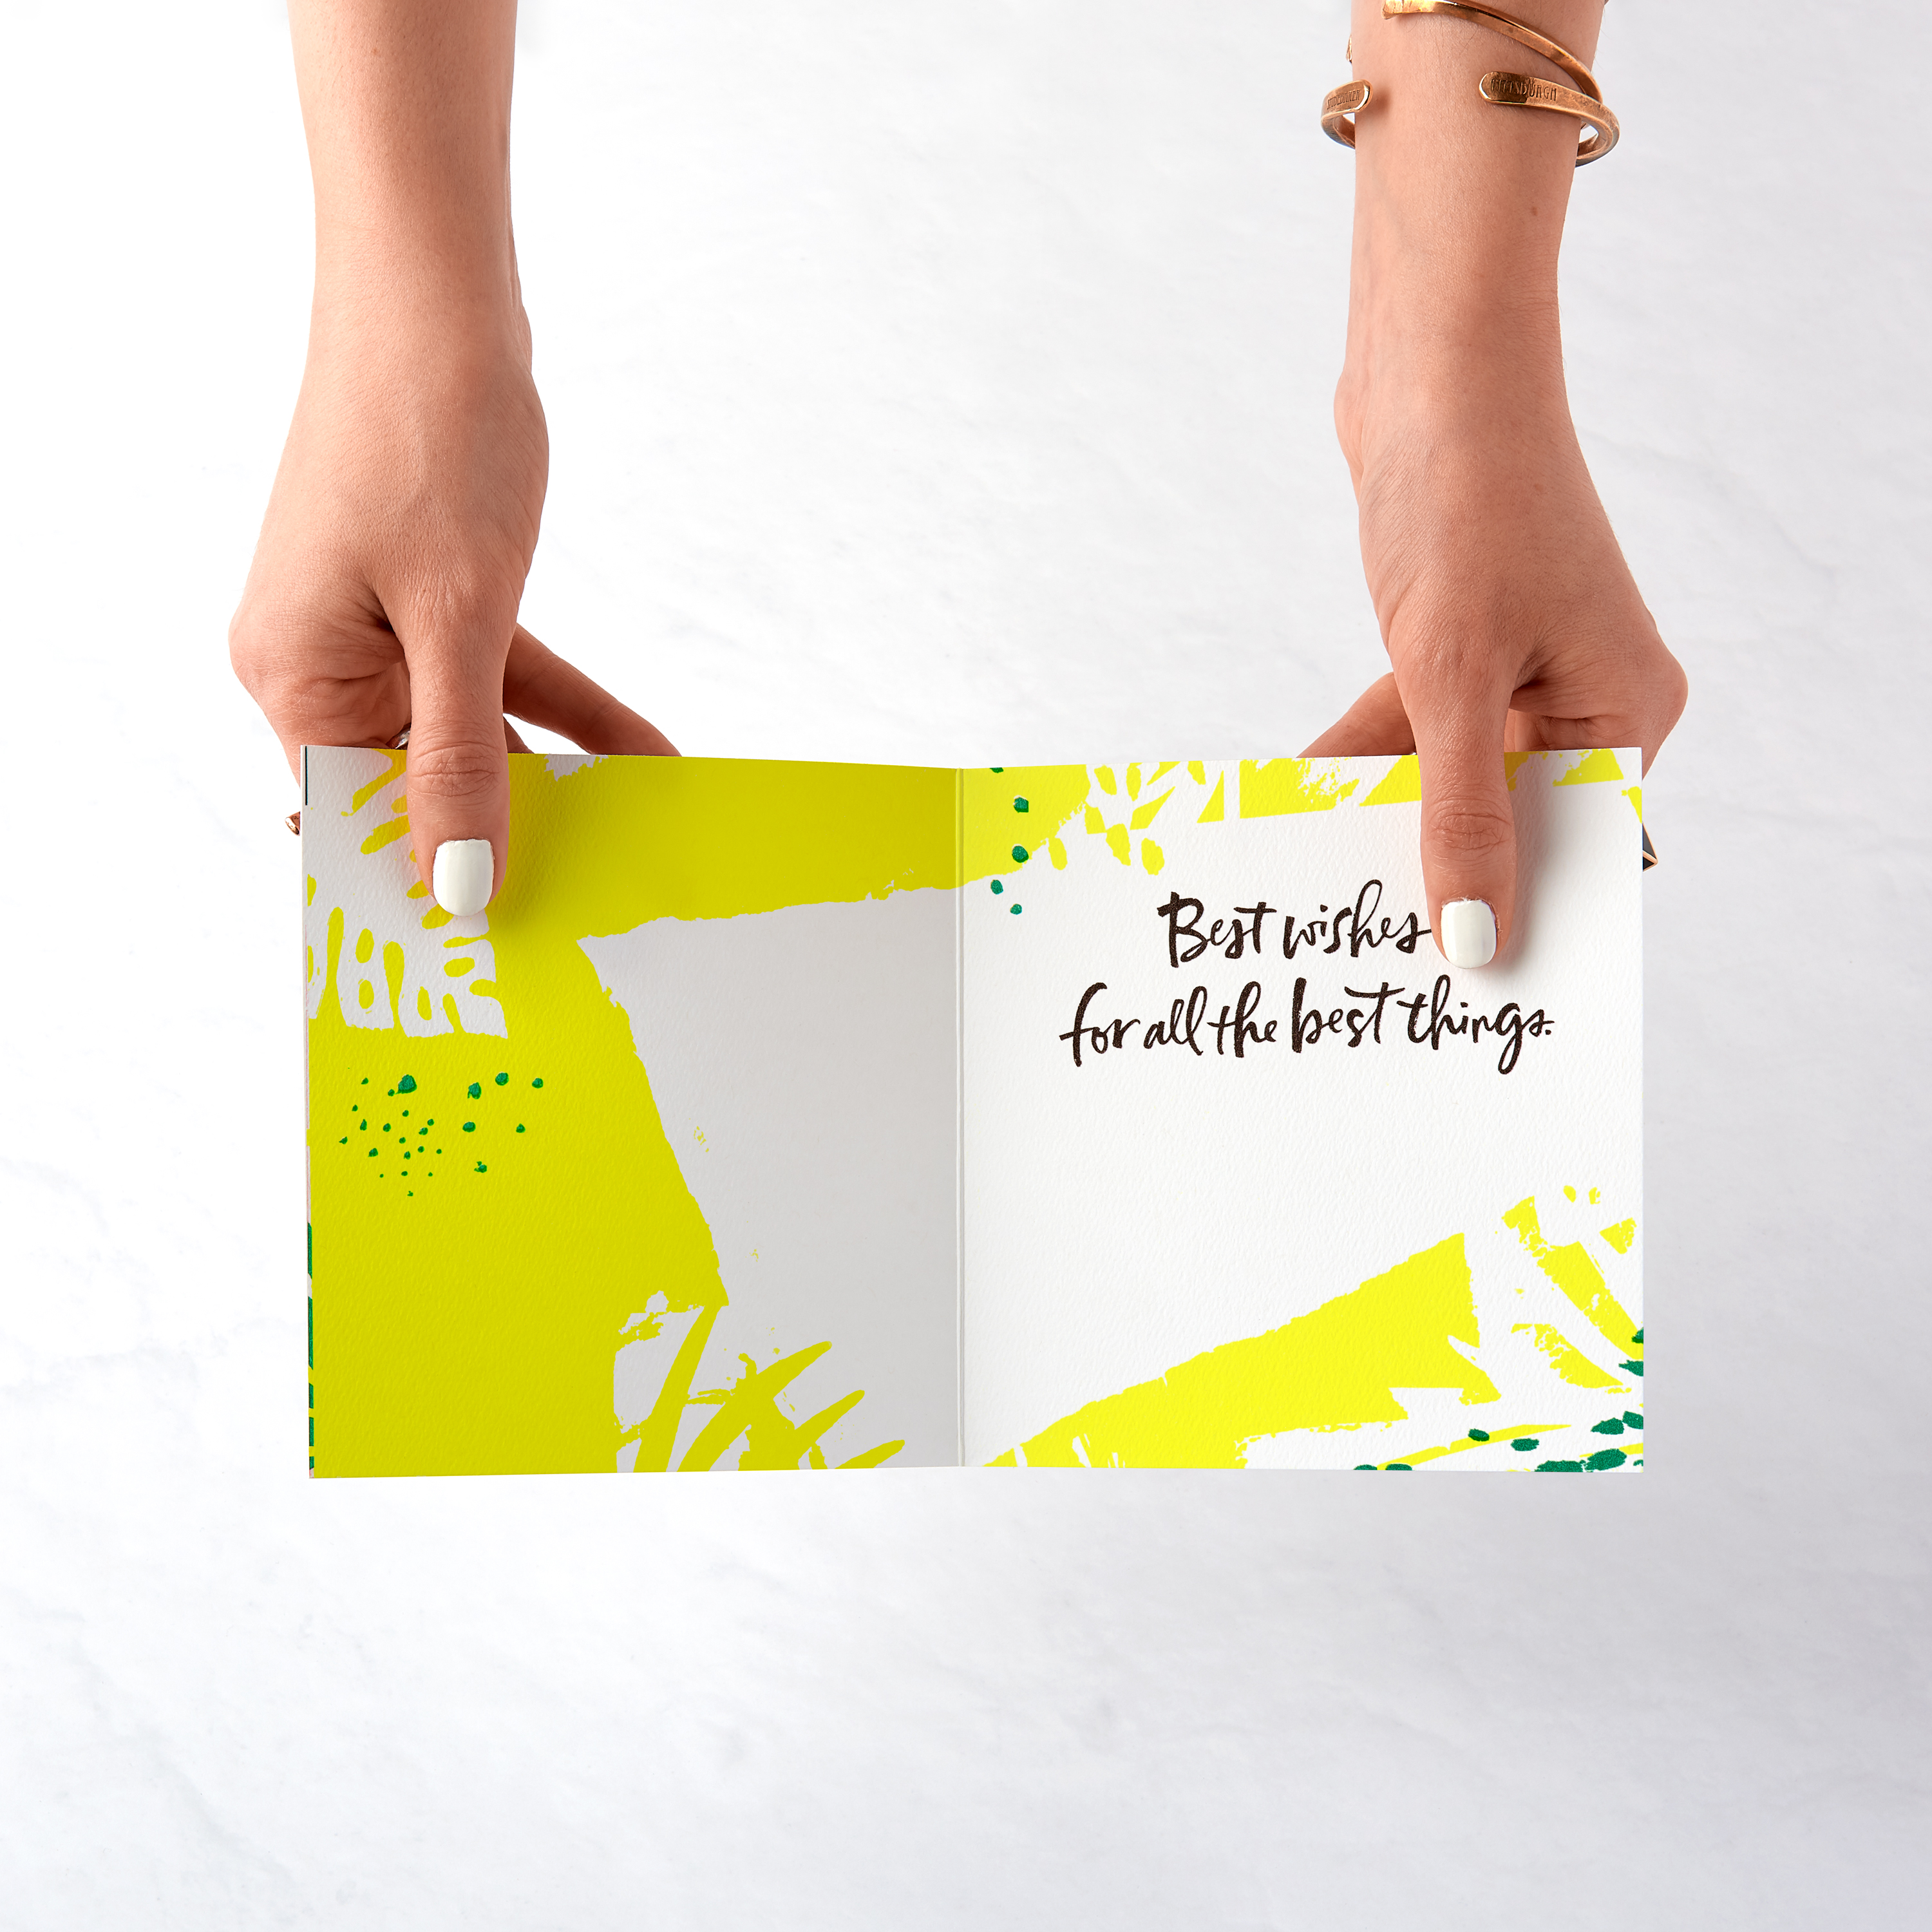 Best Wishes Greeting Card - Congratulations, Graduation, New Job, Promotion, New Home image